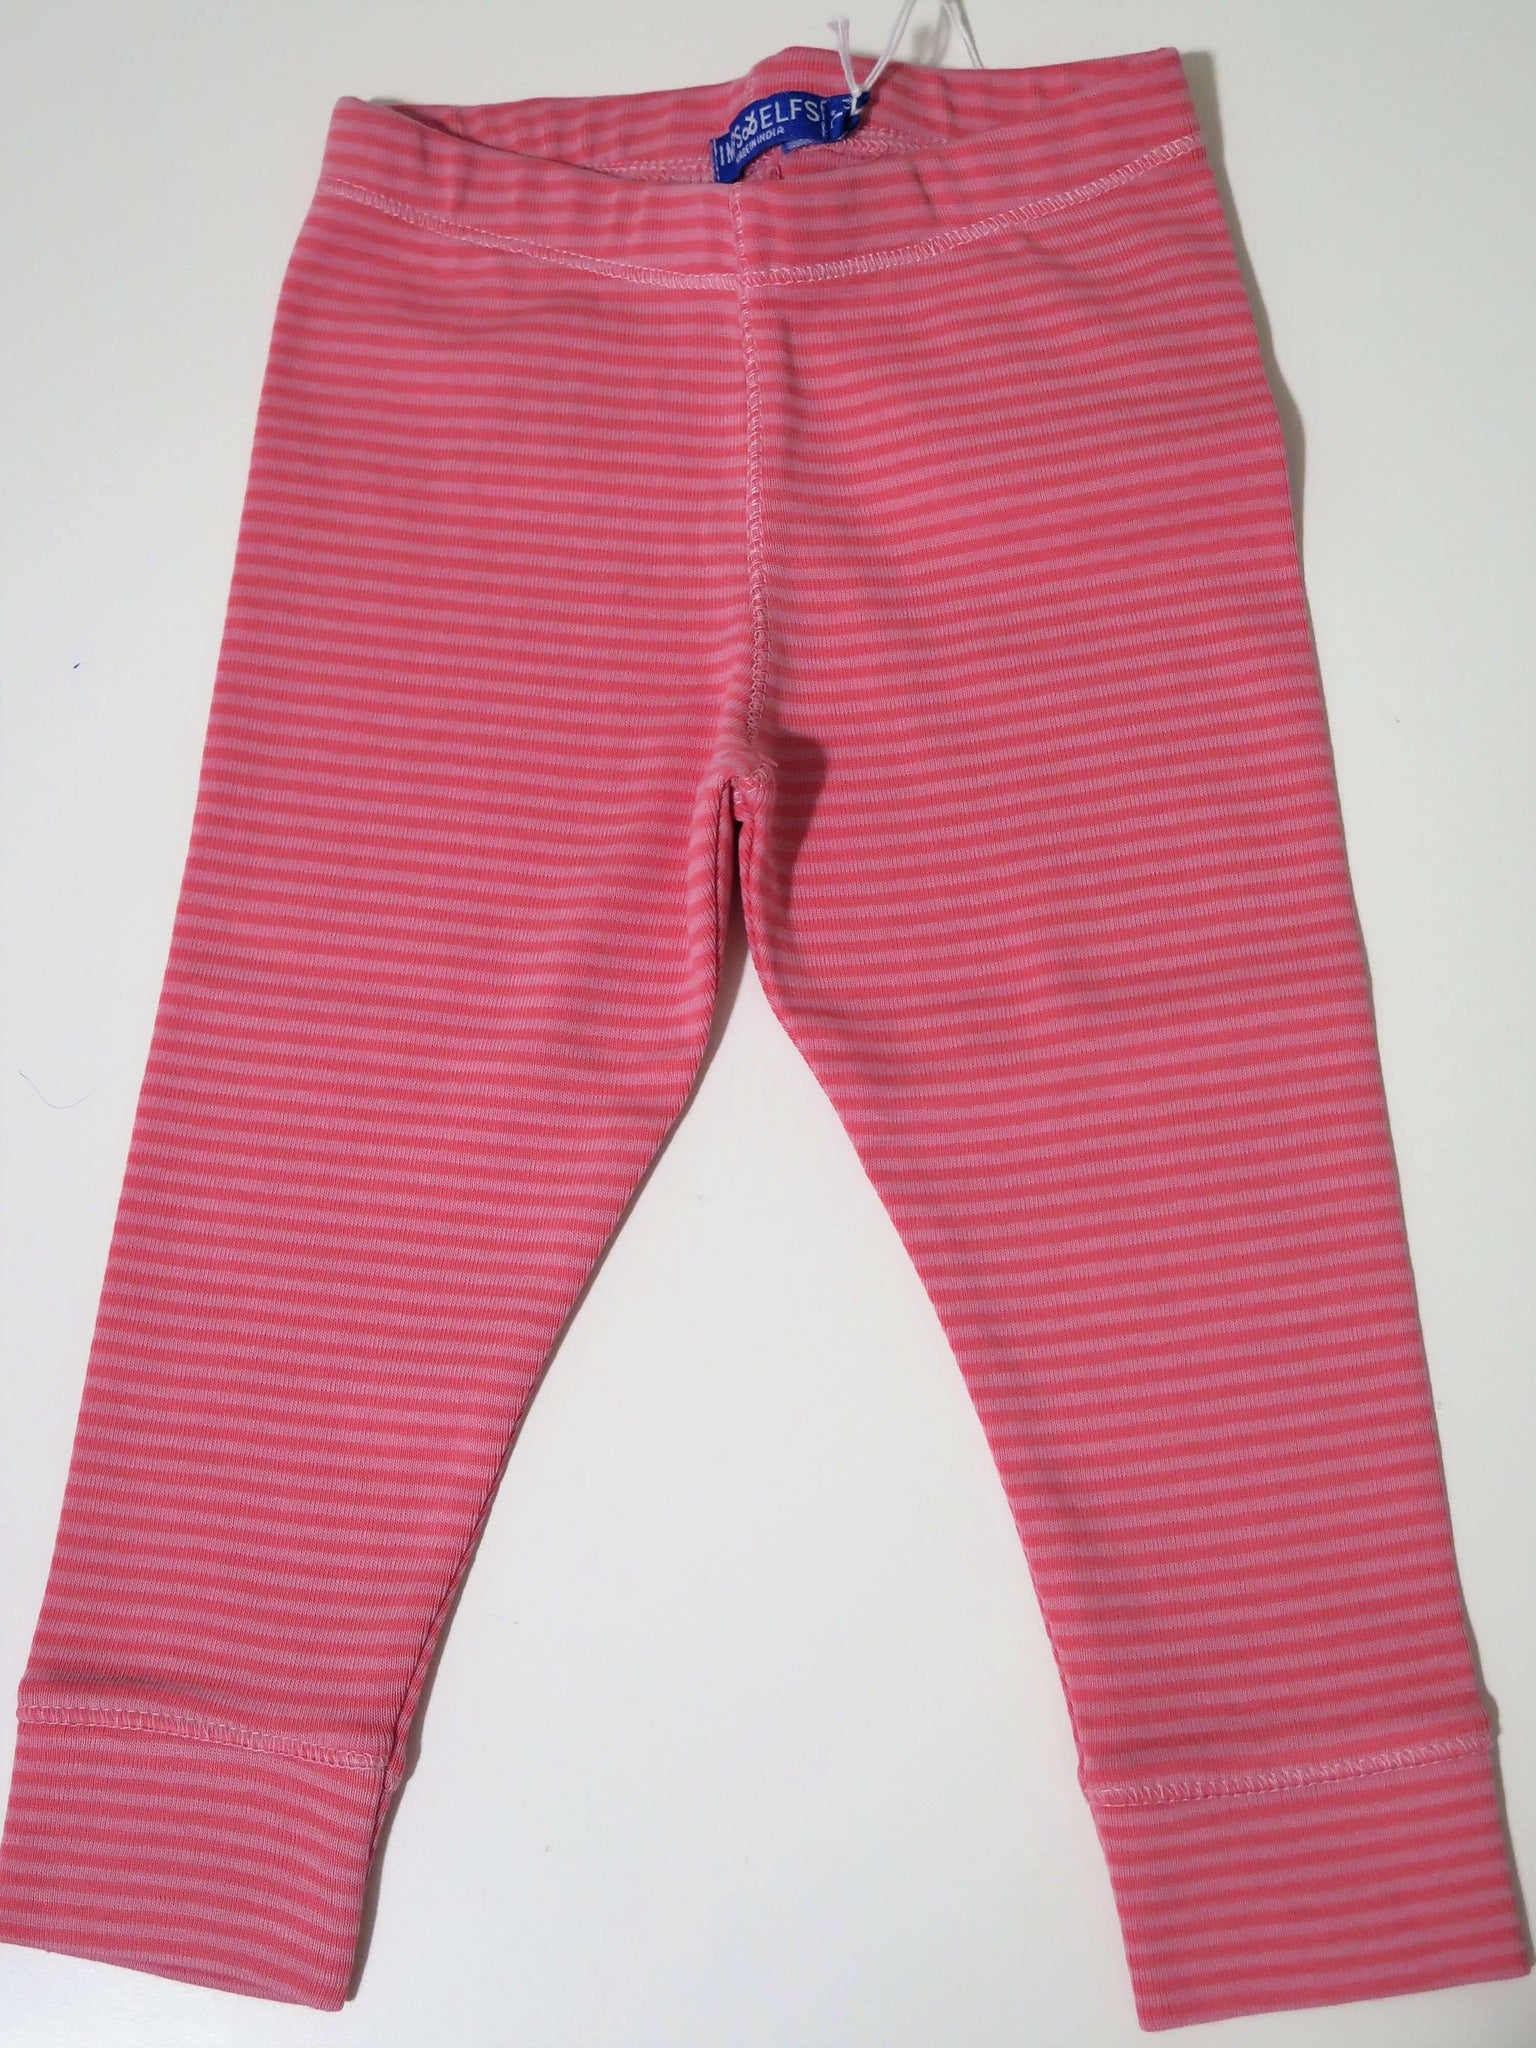 IMPS & ELFS PINK STRIPE LEGGINGS